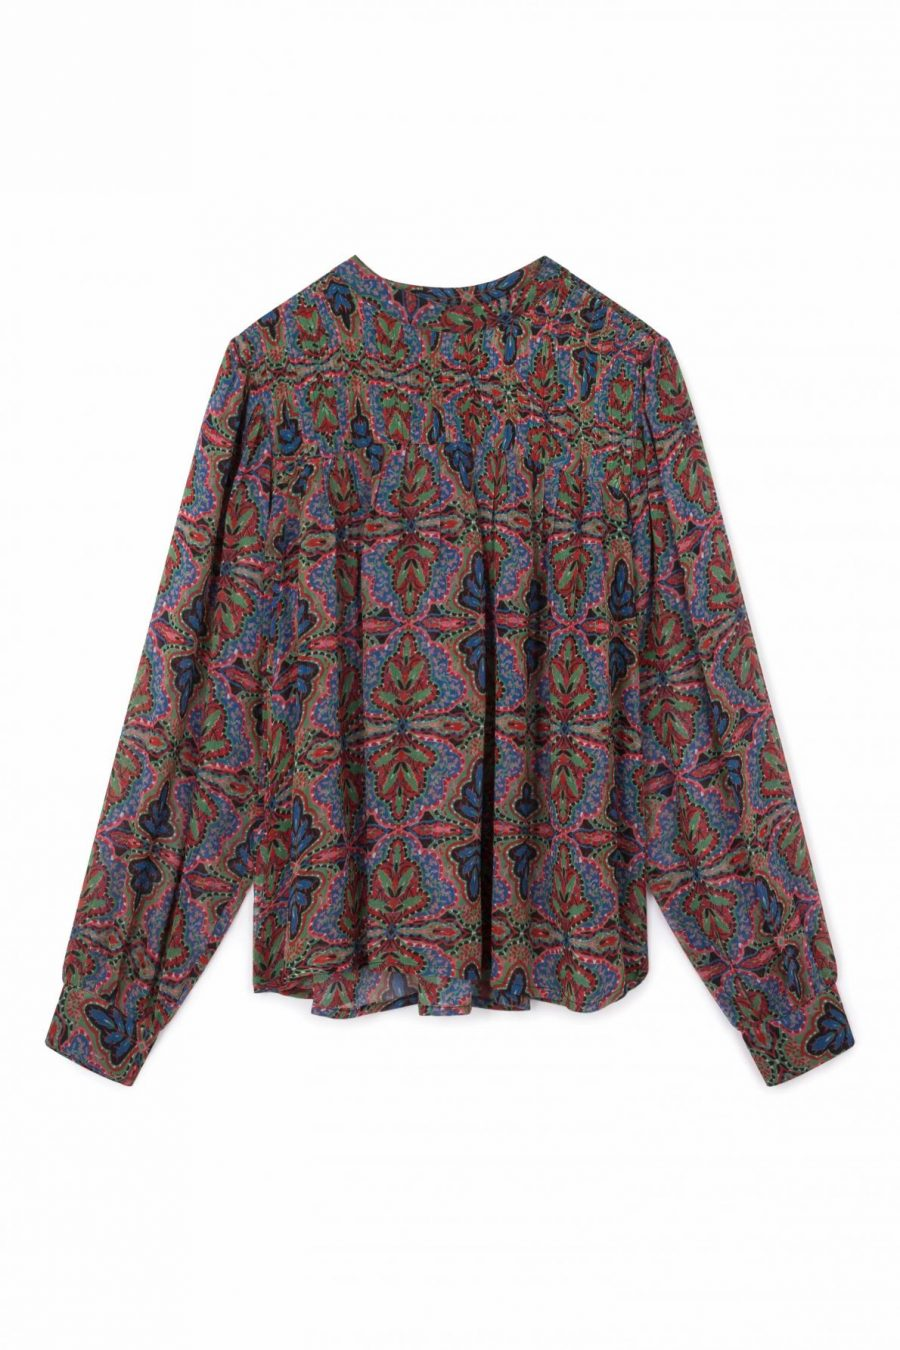 blouse_chagrin_lierre_red-10_1